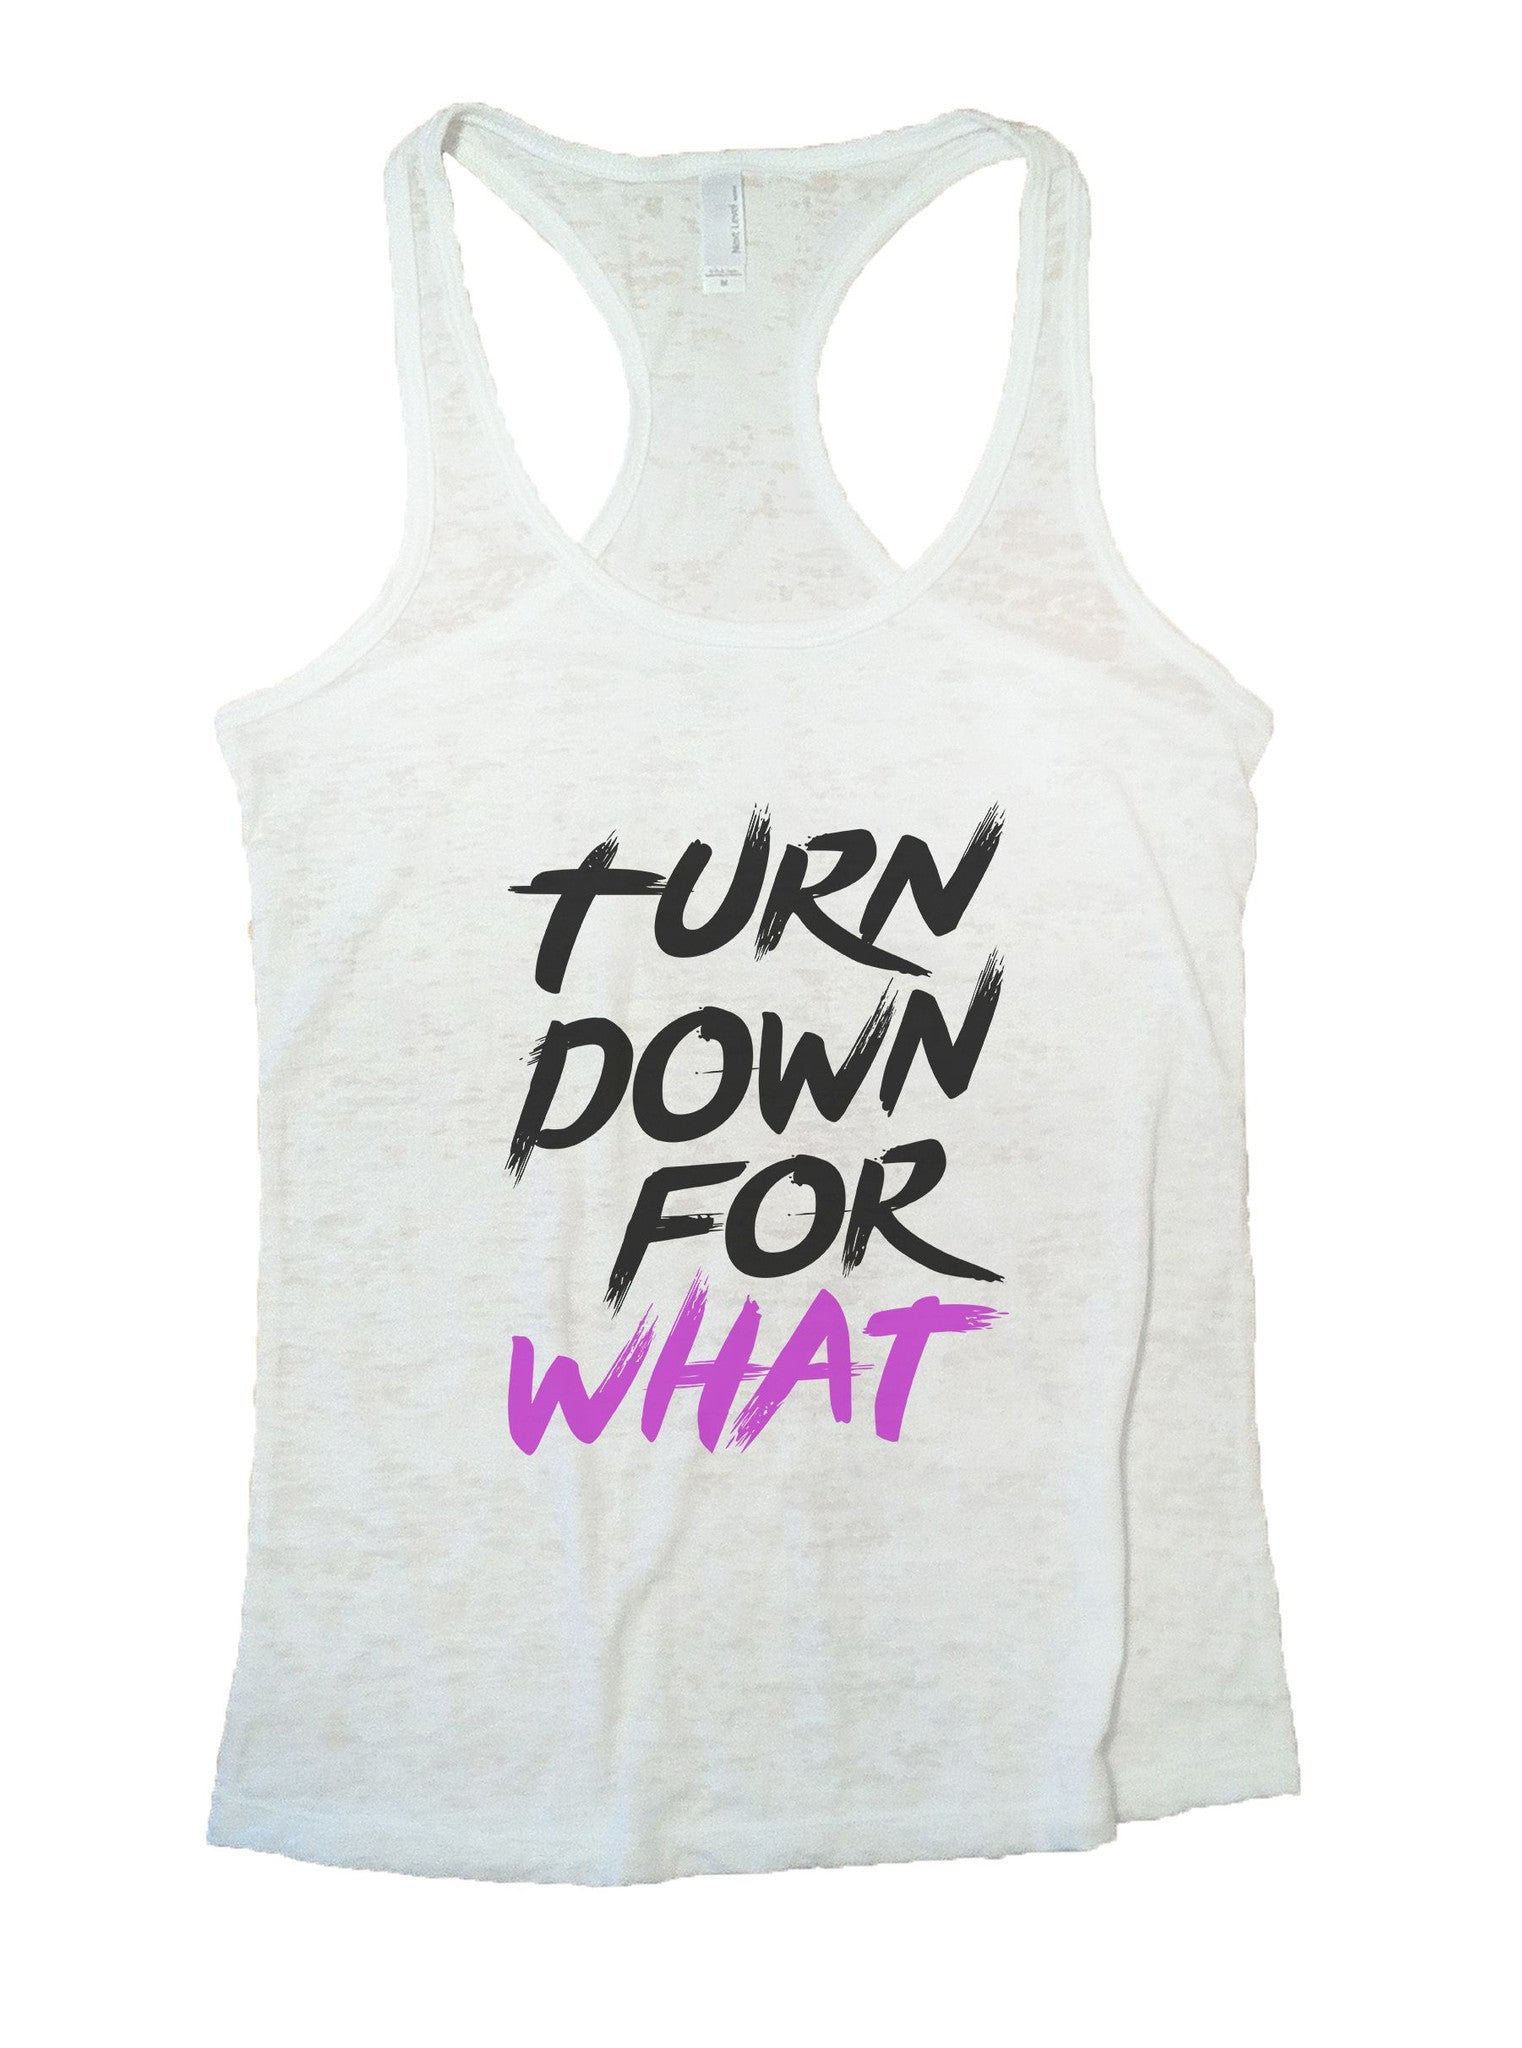 Turn Down For What Burnout Tank Top By BurnoutTankTops.com - 1126 - Funny Shirts Tank Tops Burnouts and Triblends  - 5